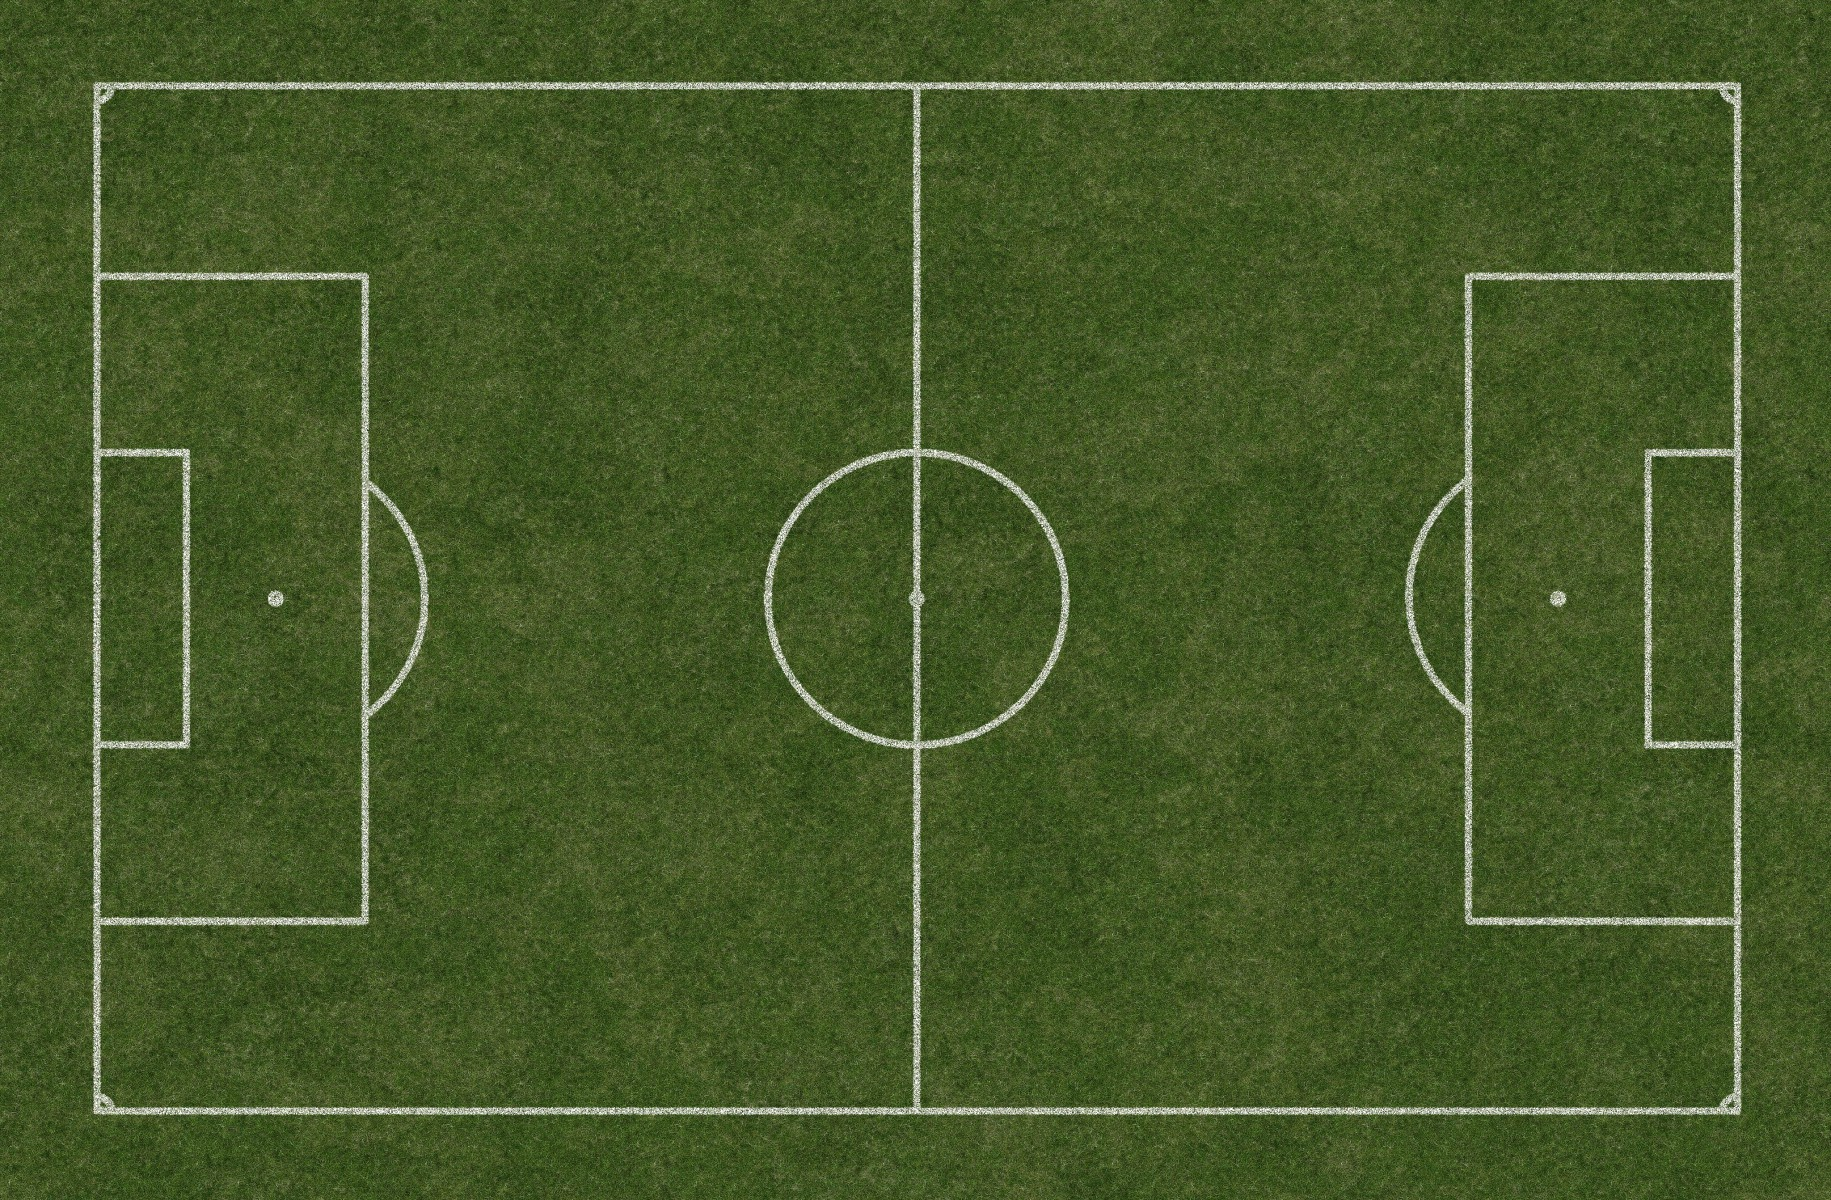 Soccer Field 04 Free Texture Download By 3dxo Com